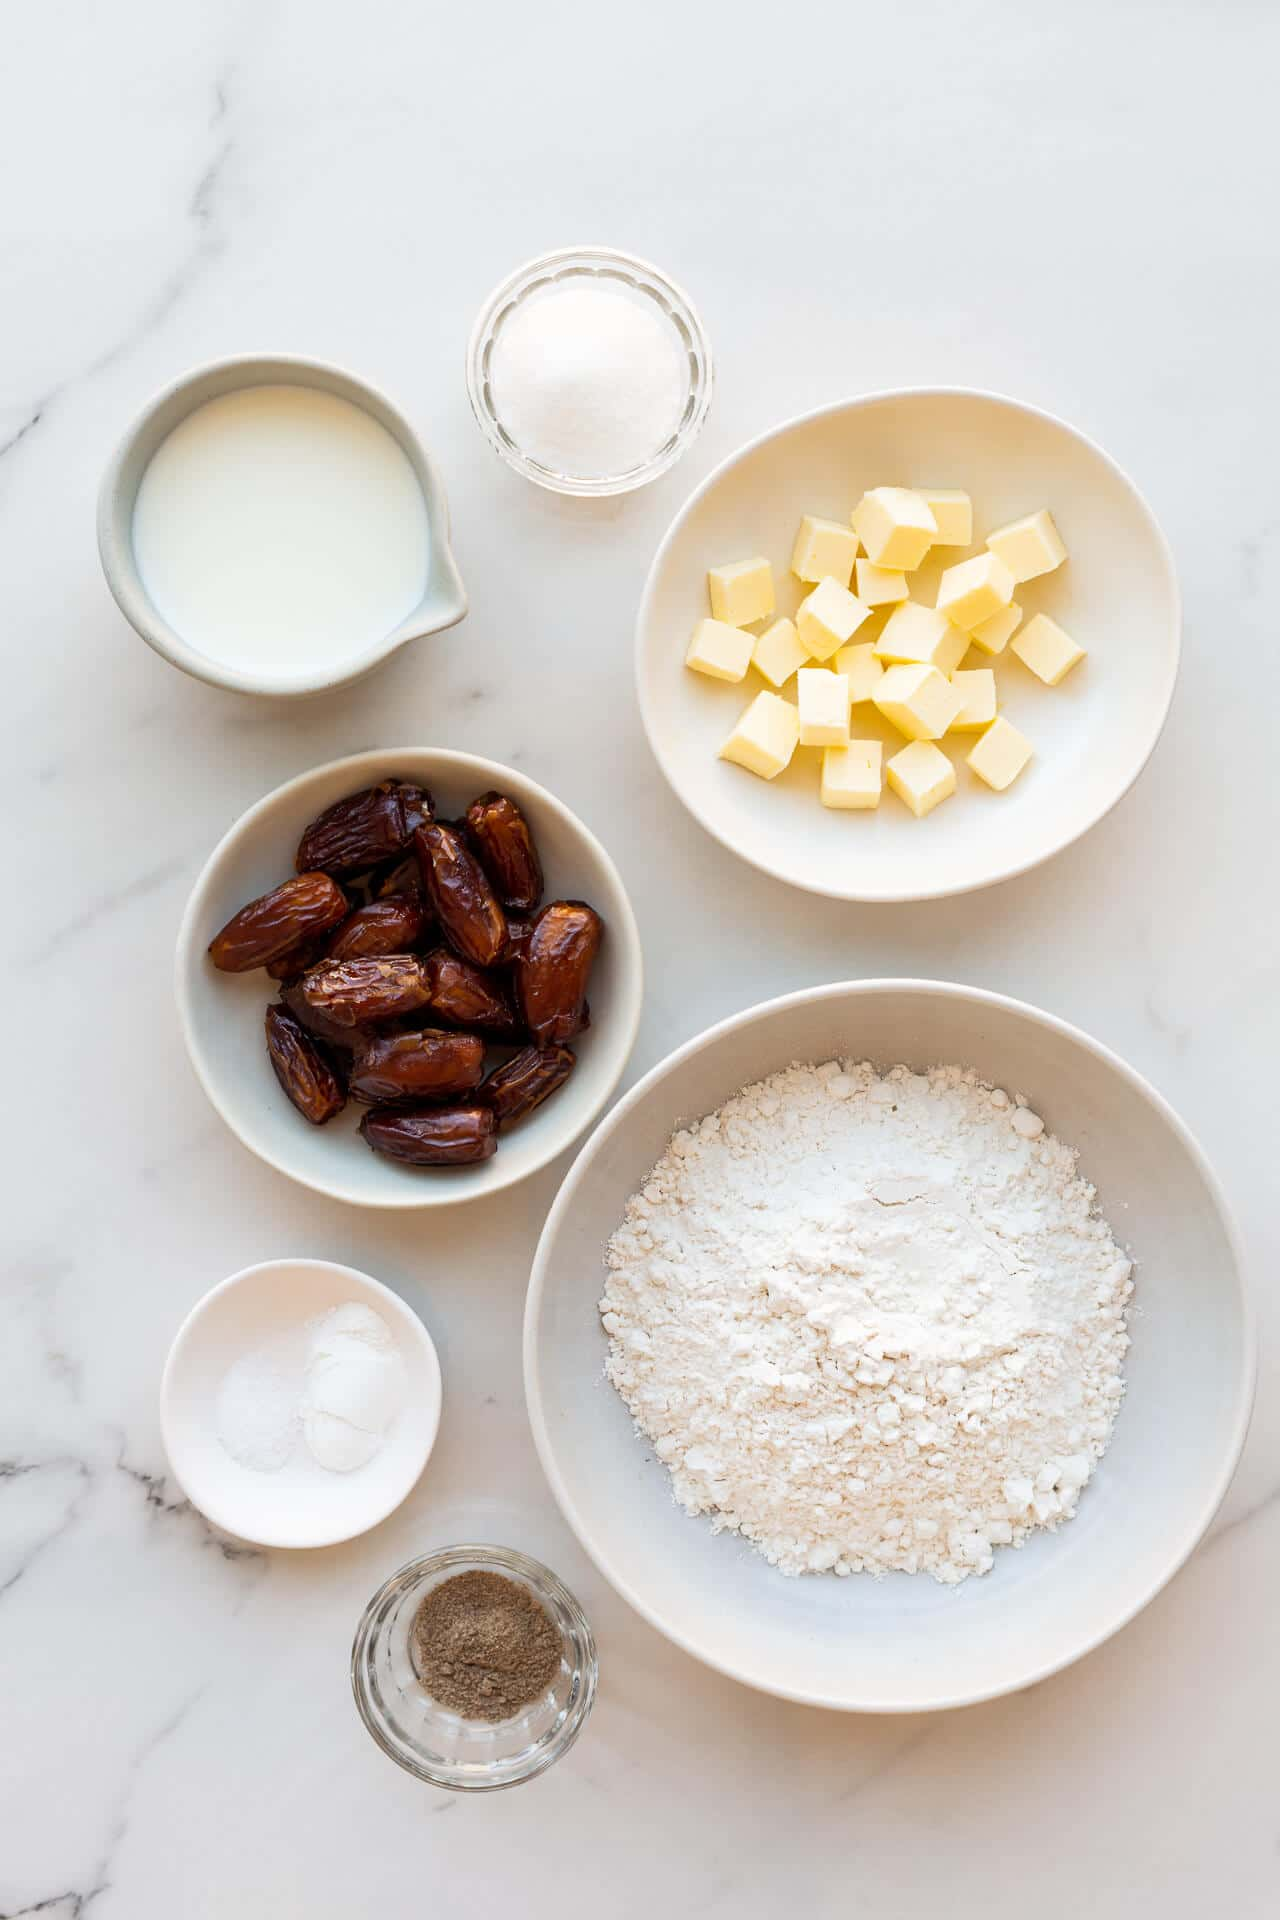 Ingredients to make date scones included cubed butter, salt, baking powder, cream, chopped pitted dates, sugar, flour, and ground cardamom all in bowls for mise-en-place